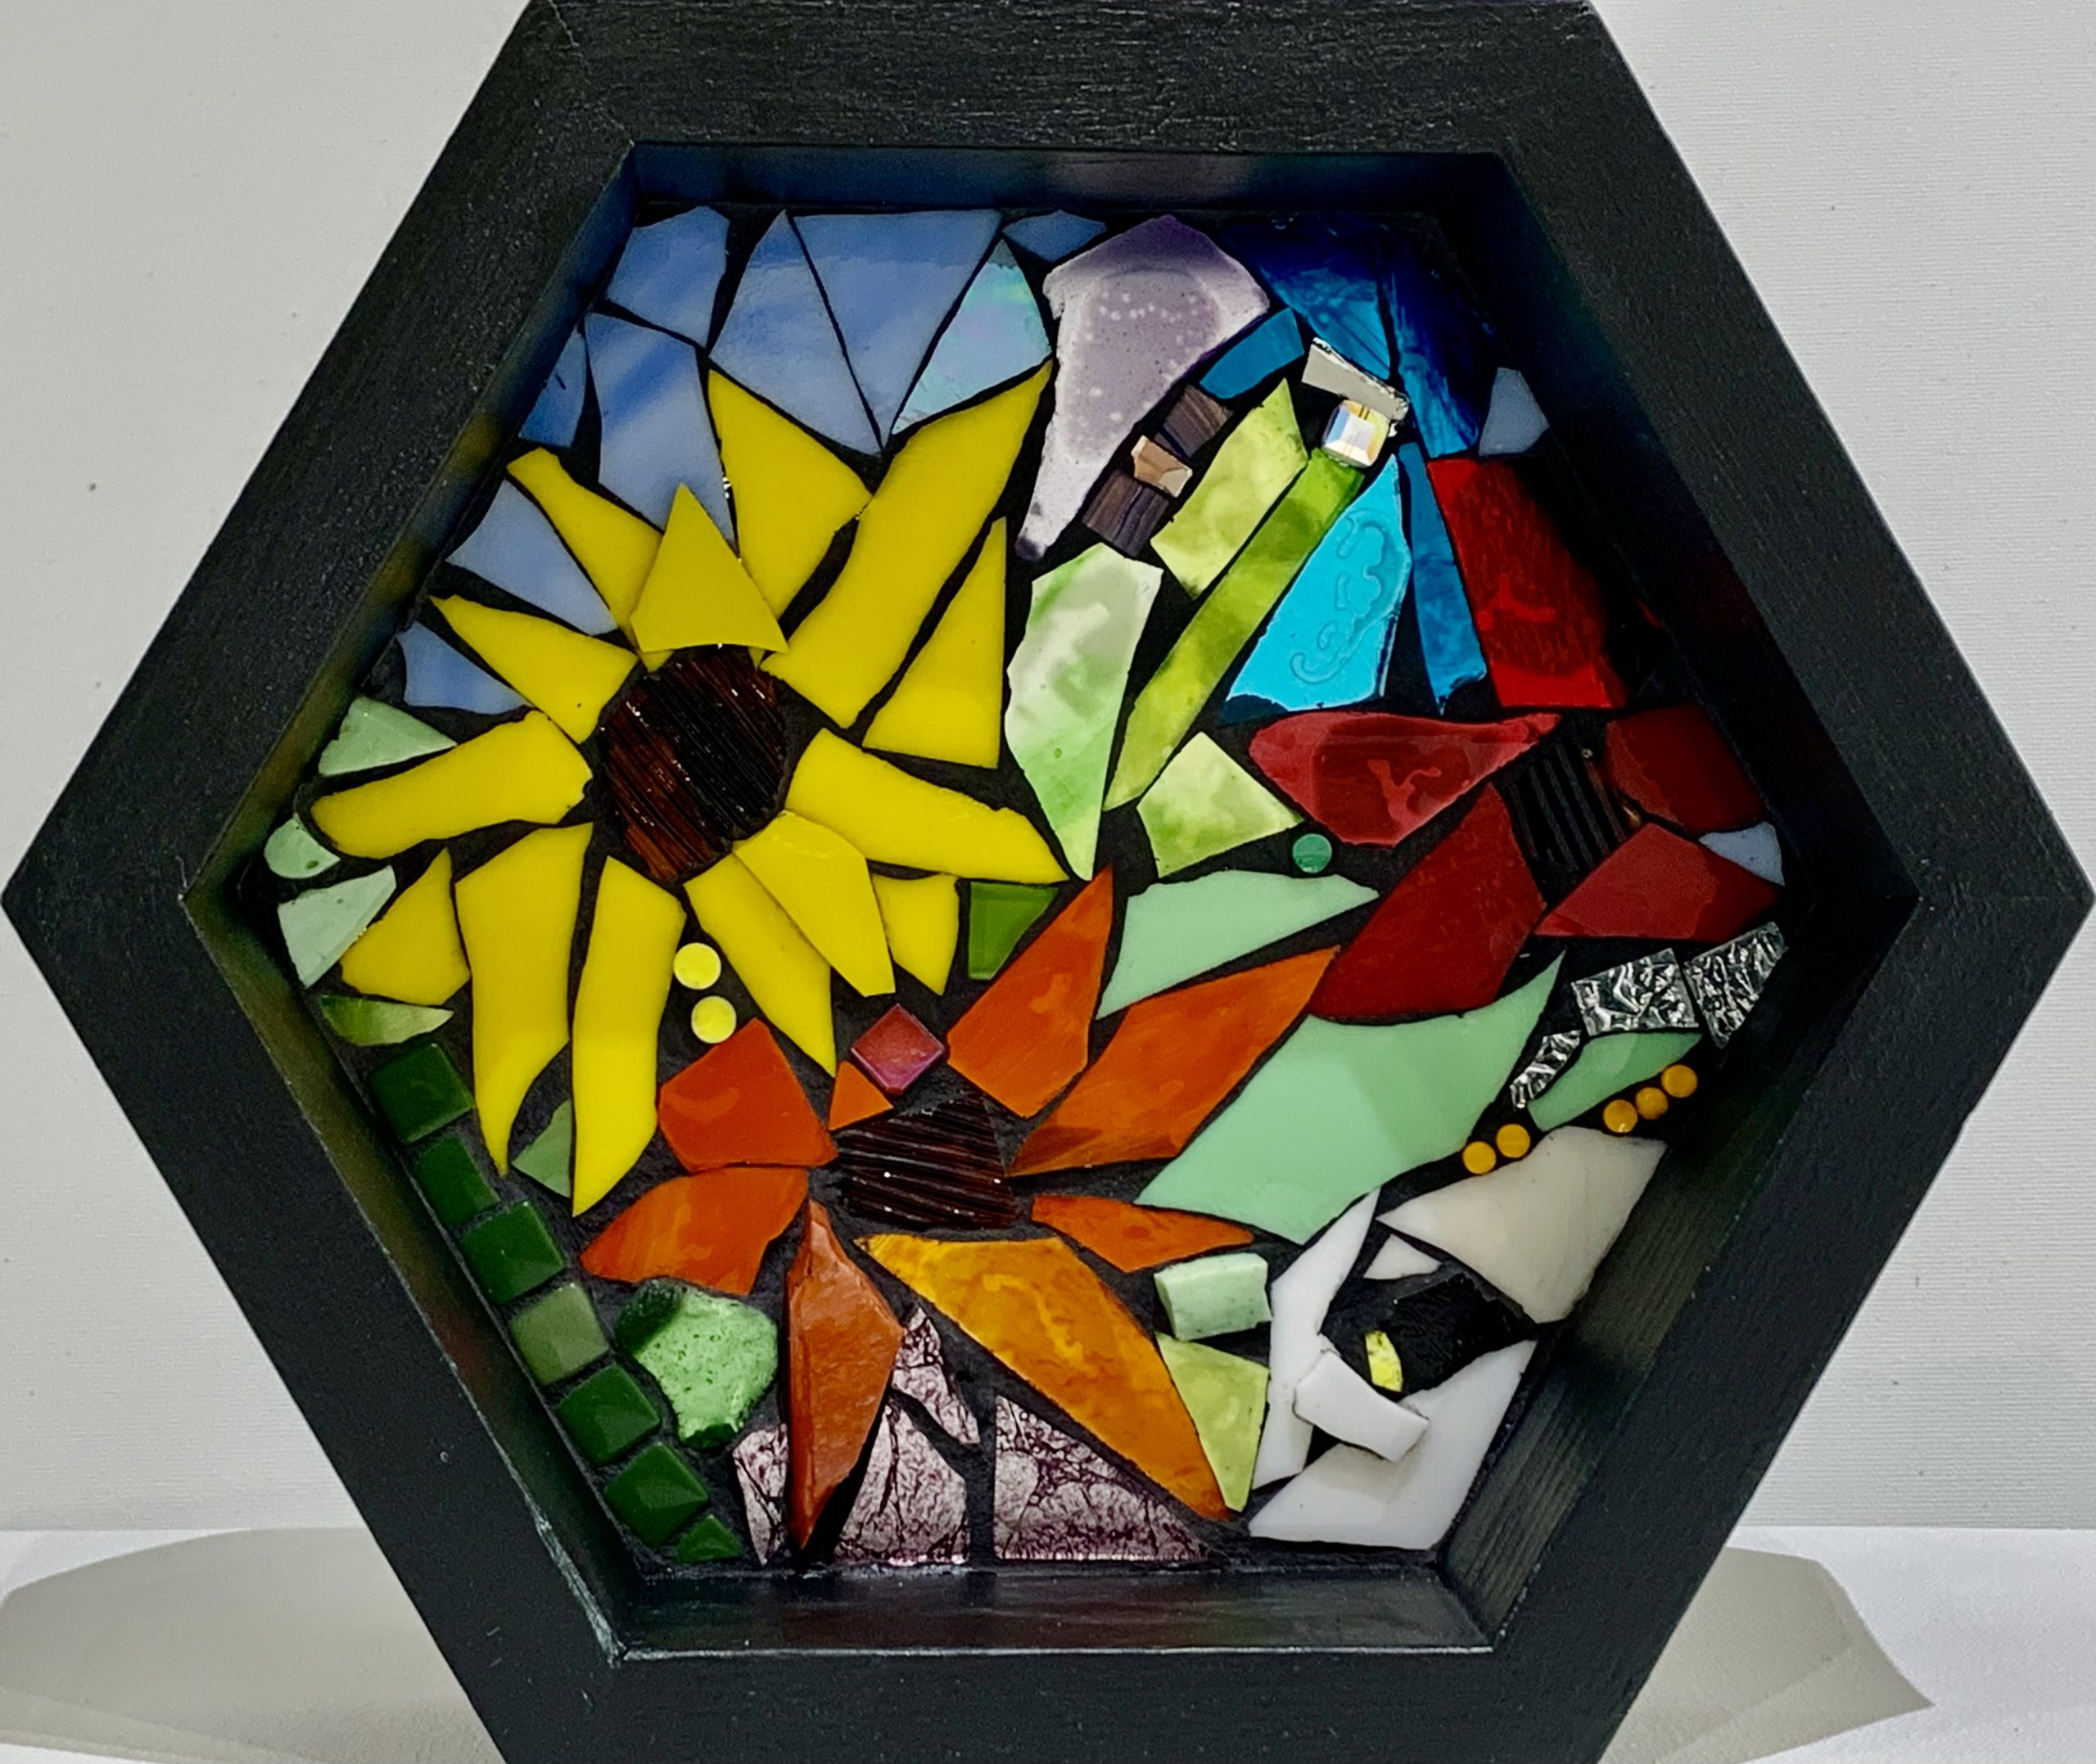 Us & Them, stained glass mosaic by Kimberly Kiel | Effusion Art Gallery + Cast Glass Studio, Invermere BC